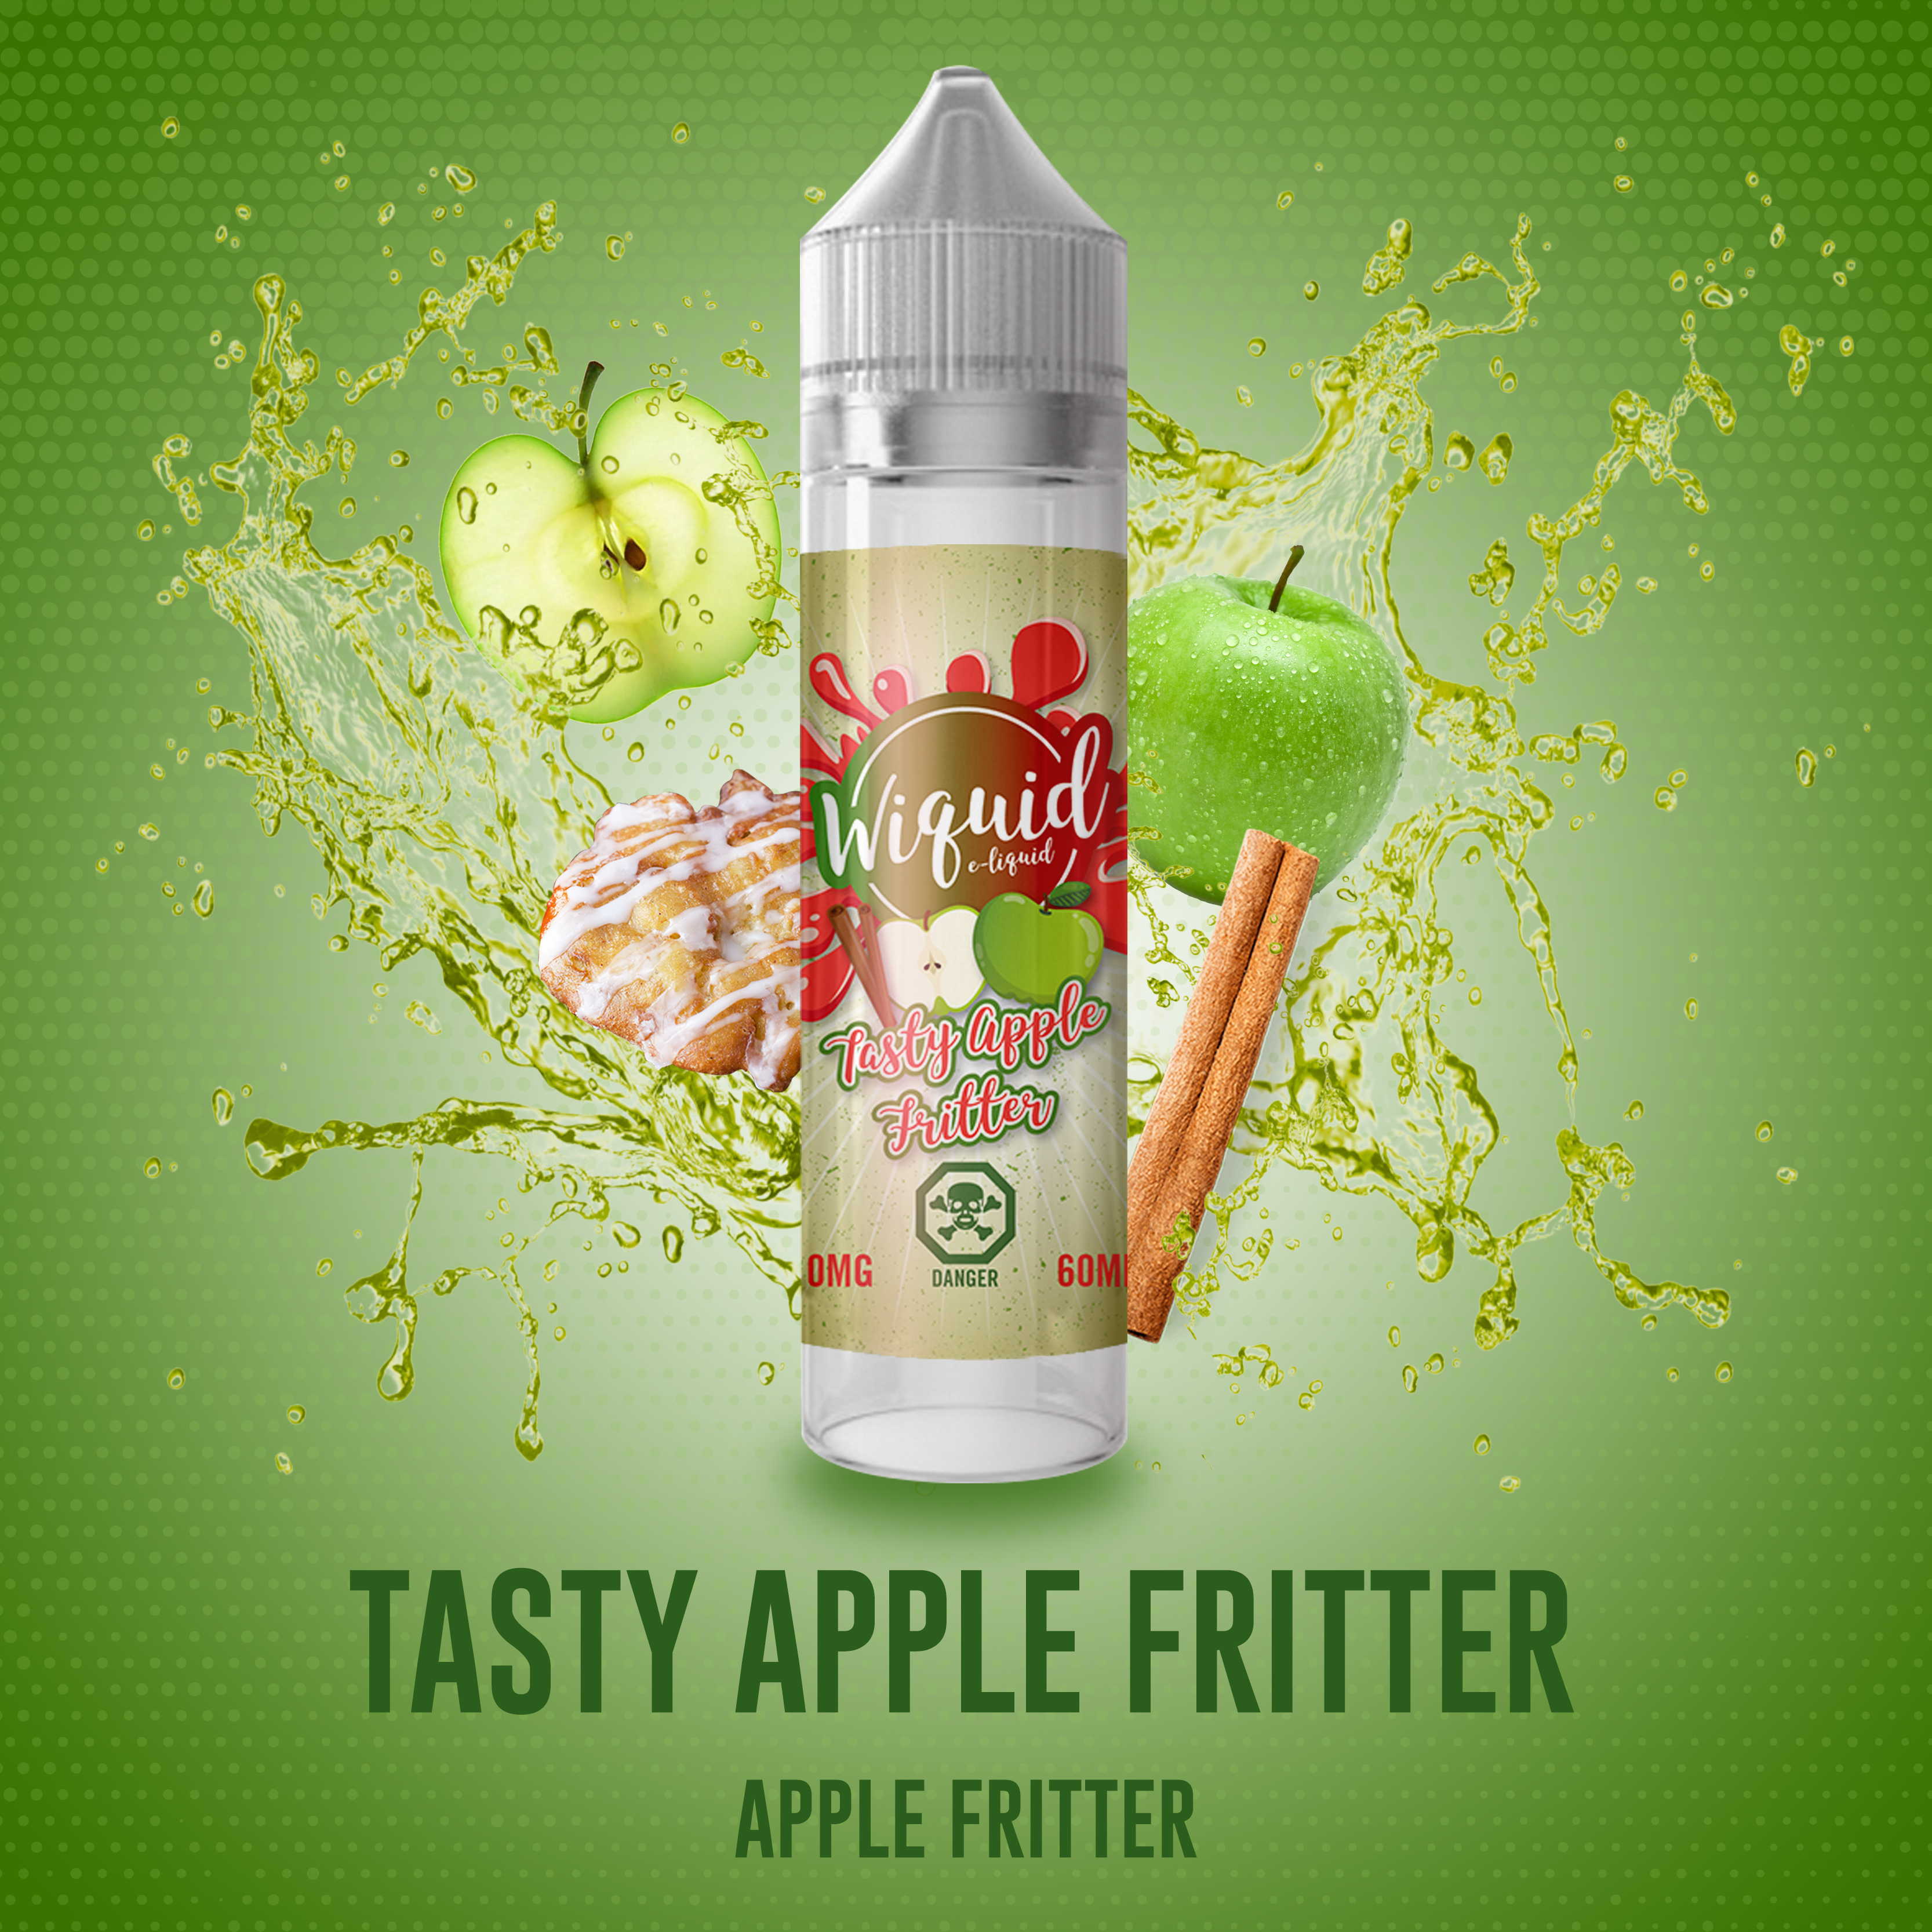 Tasty Apple Fritter